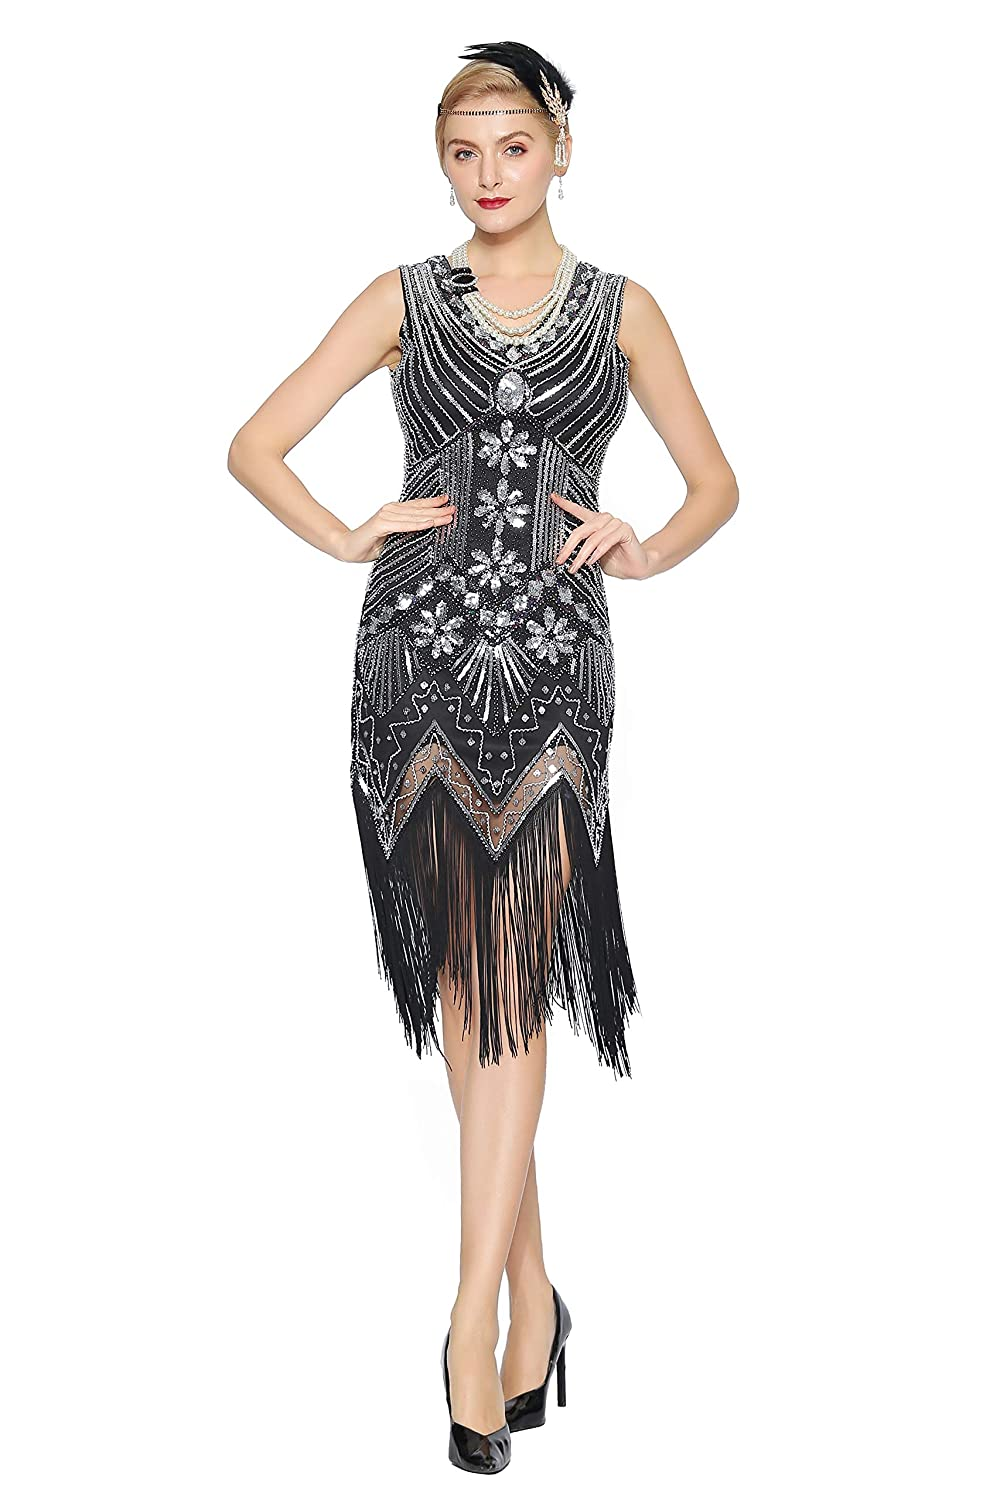 Roaring 20s Costumes- Flapper Costumes, Gangster Costumes Metme Womens Flapper Dress 1920s V Neck Beaded Fringed Gatsby Theme Raoring 20s Dress for Prom $35.99 AT vintagedancer.com